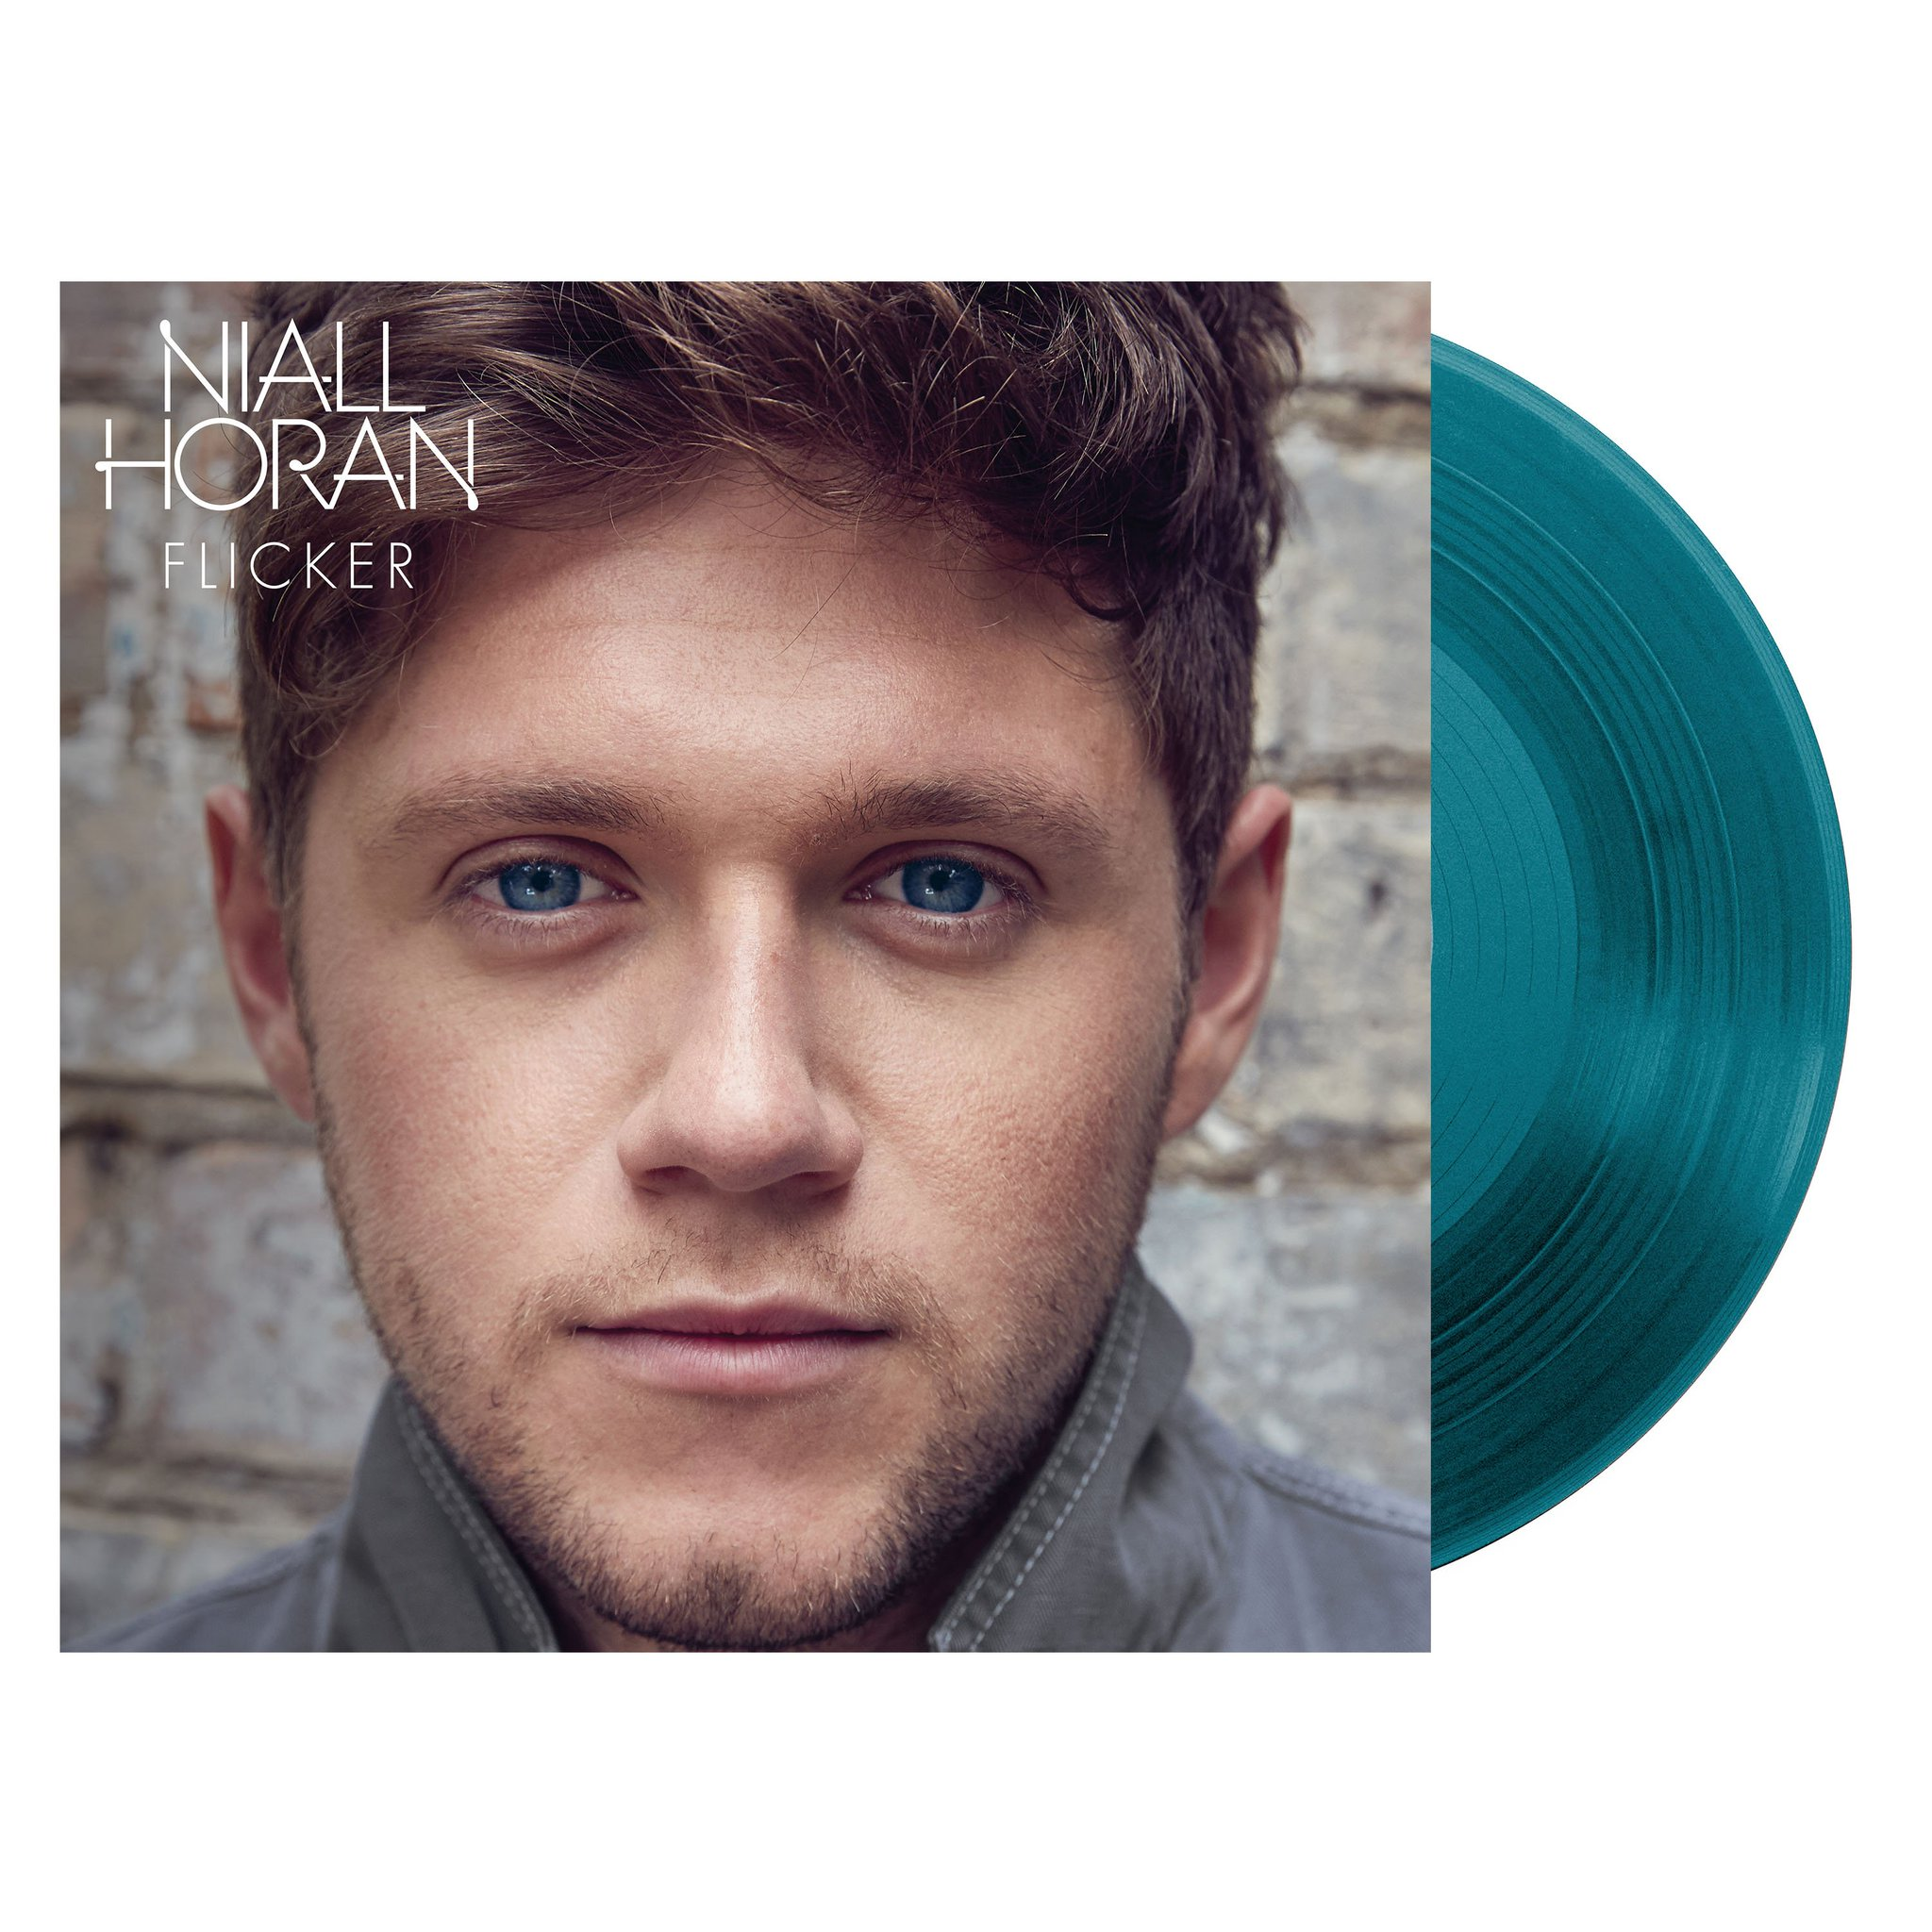 Delighted that ' Flicker ' will be available on vinyl at @UrbanOutfitters https://t.co/Om0xR9Wxld https://t.co/eucohFWKJN